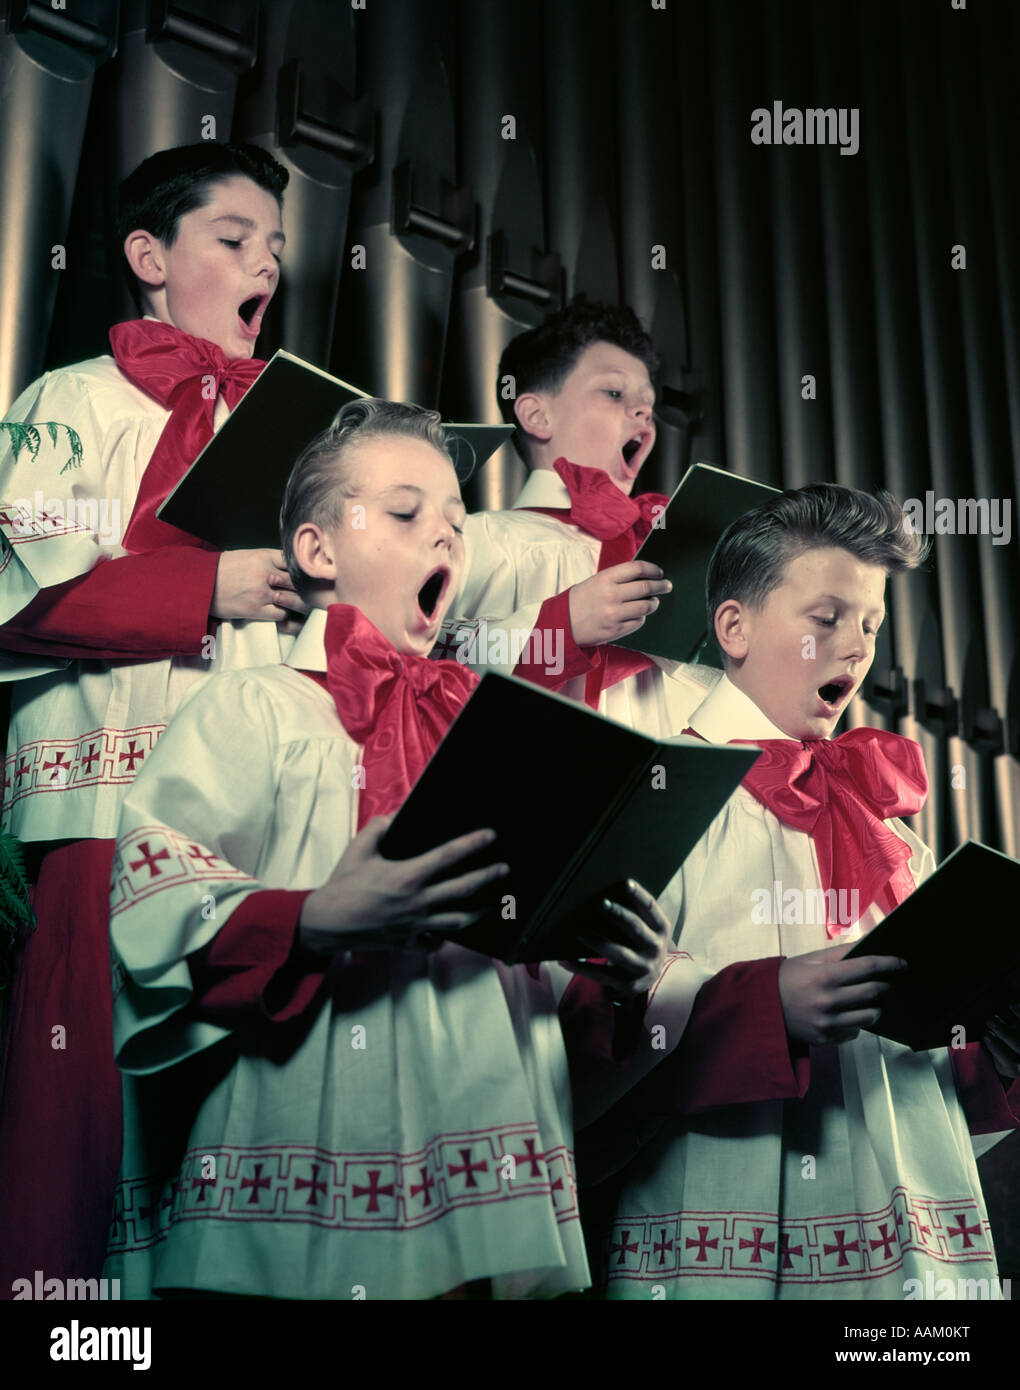 1950s Four Choir Boys In Red And White Robes Singing In Front Of Stock Photo Alamy